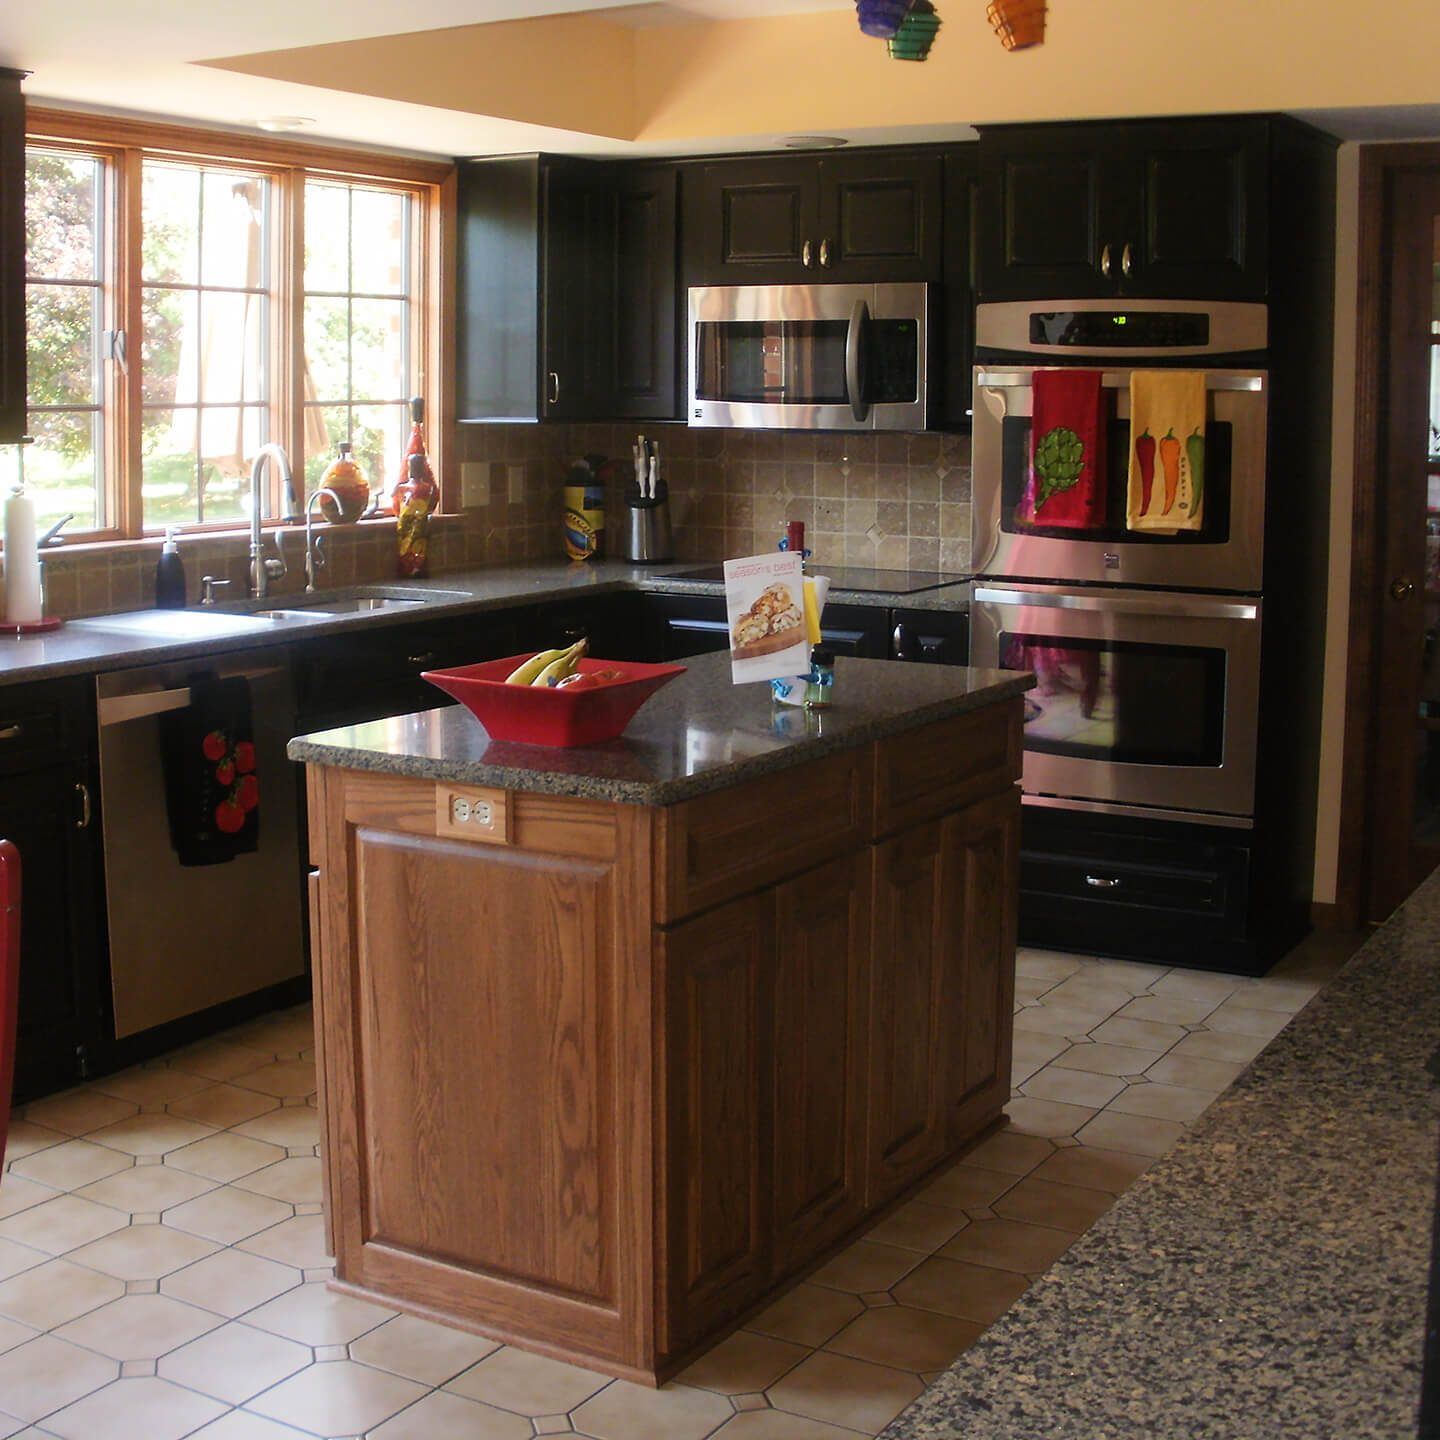 Kinetic Kitchen and Bath Gallery Photo - Kitchen remodel 2